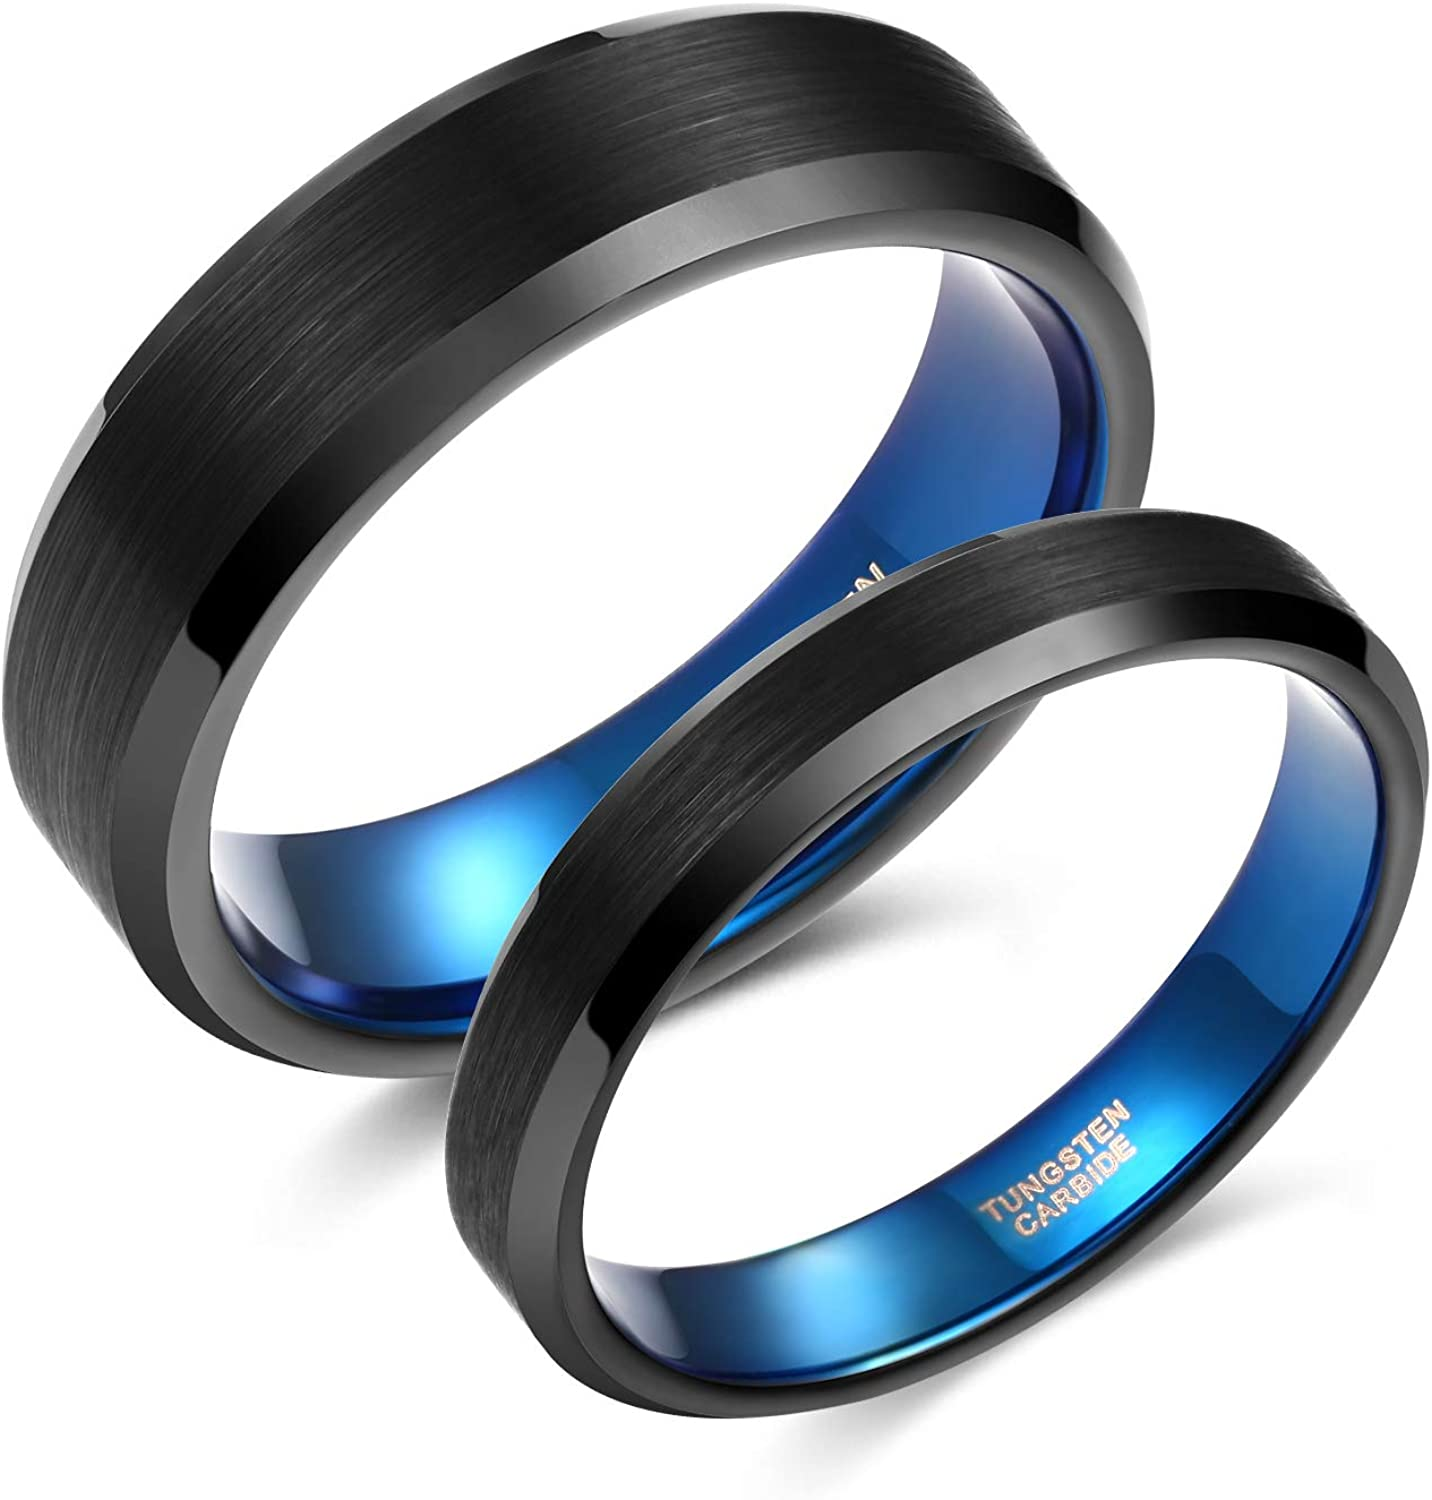 Greenpod 4mm 6mm Wedding Band for Men Women Black Blue Brushed Tungsten Carbide Wedding Rings for Couples Size 4-14